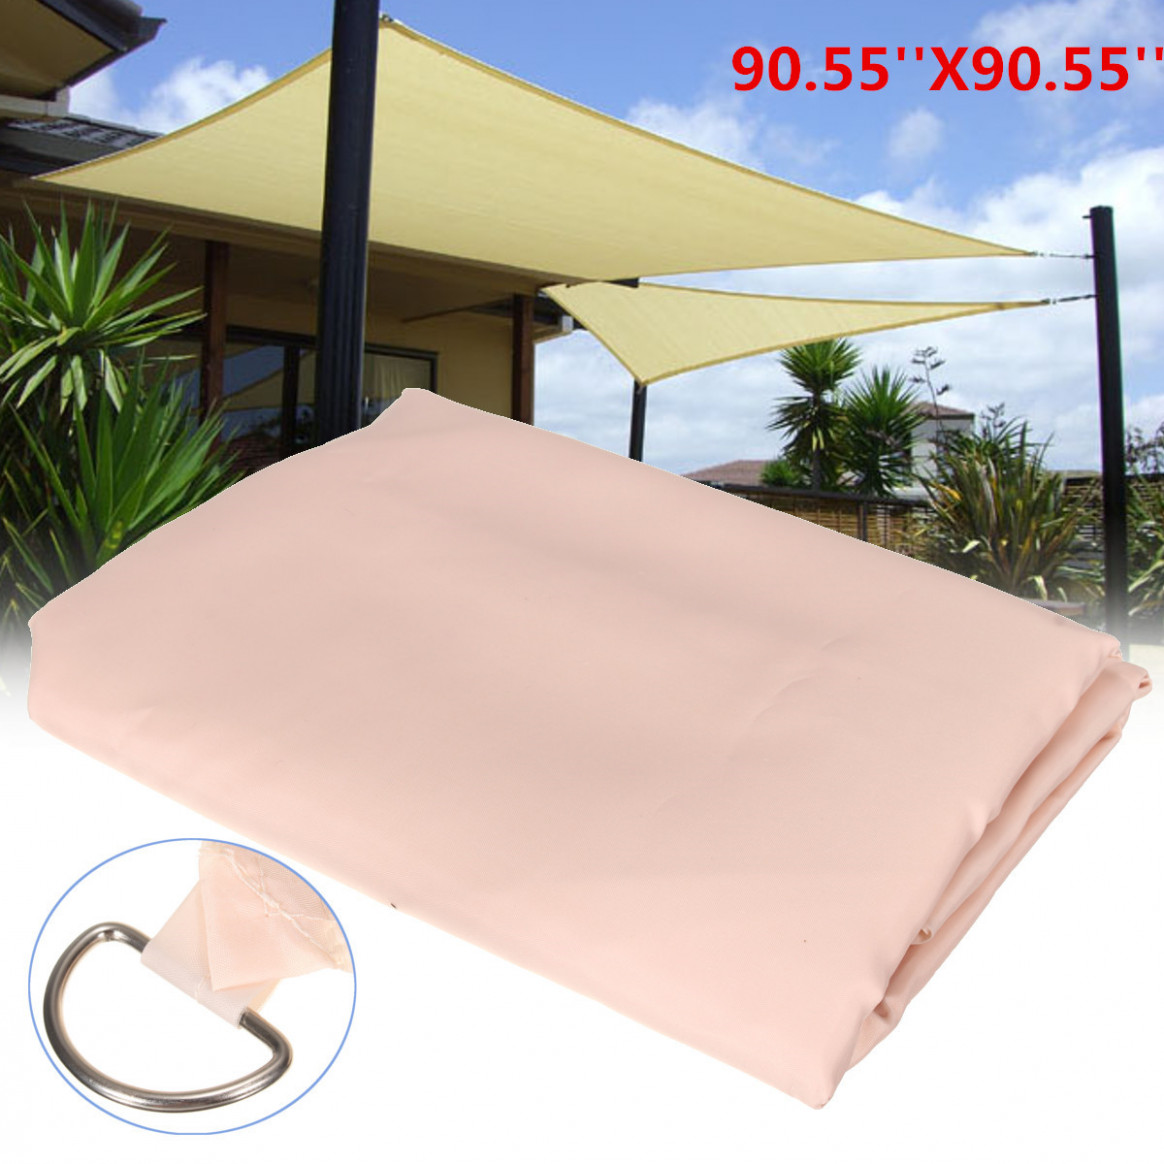 113x13m Patio Outdoor Shade Sail Garden Cover Mesh Net Polyester Car Window Awning Carport Canopy Carport Tent Replacement Parts